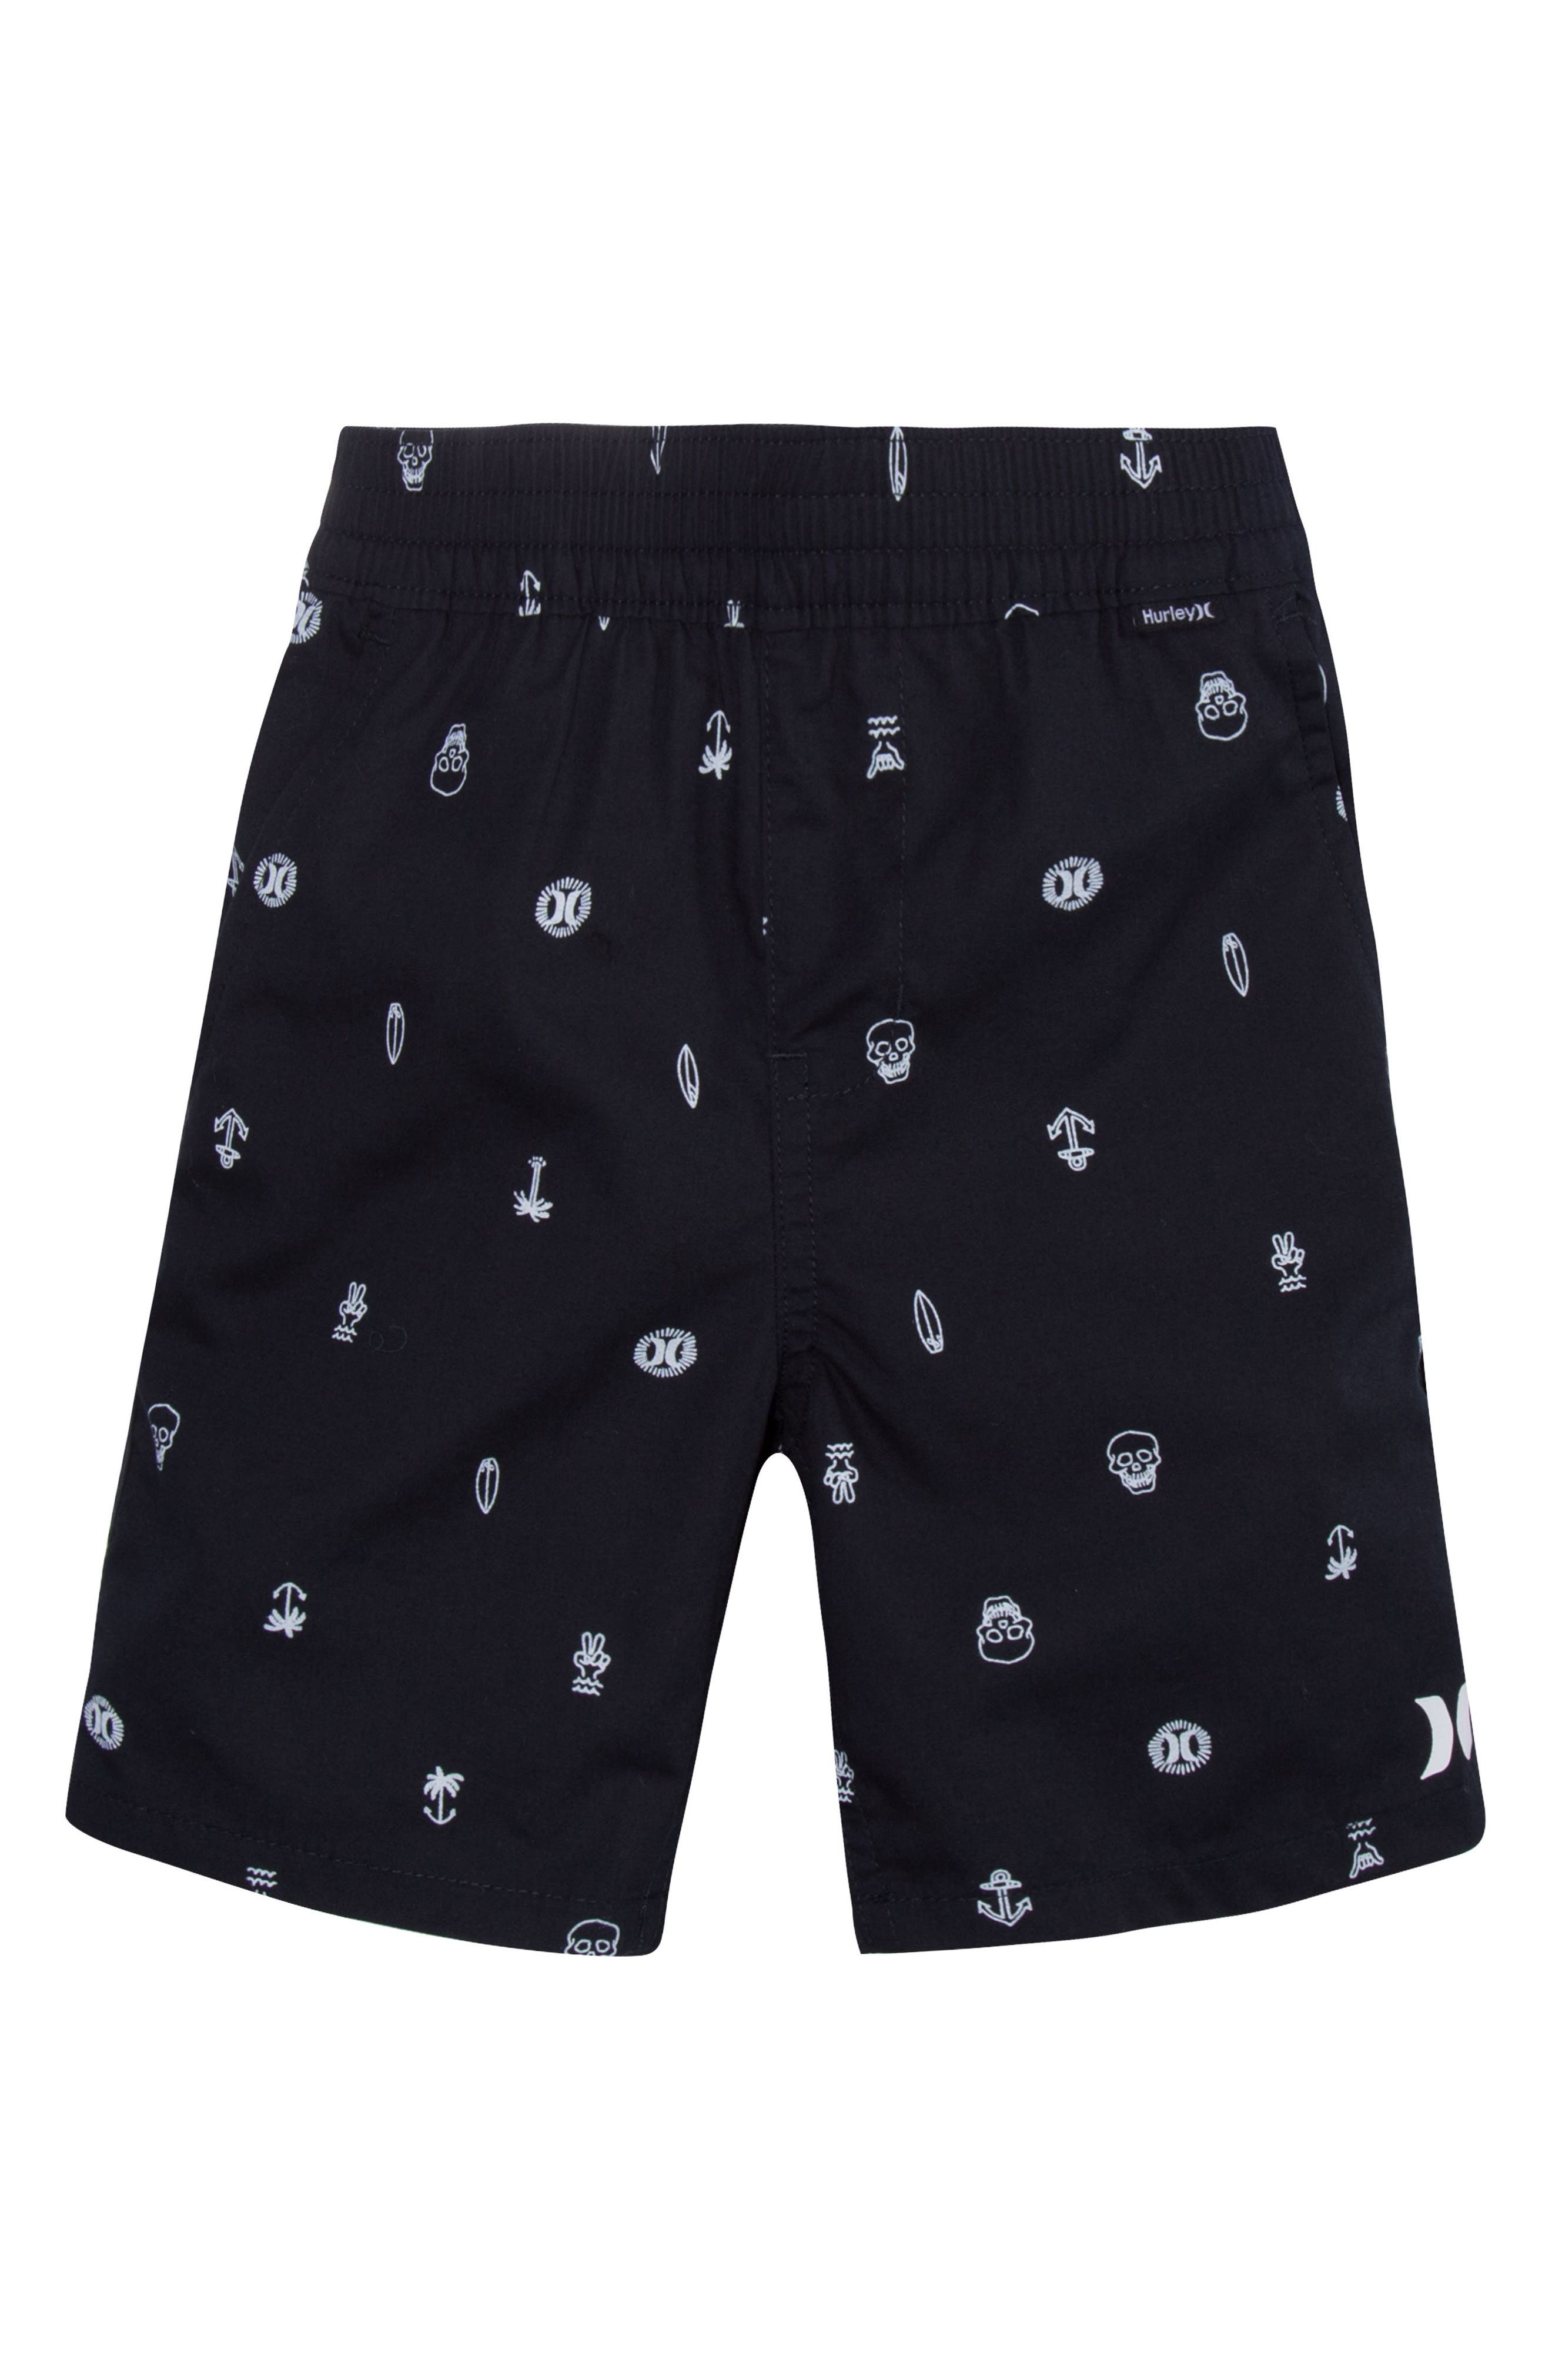 Alternate Image 1 Selected - Hurley Poplin Pull-On Shorts (Toddler Boys & Little Boys)